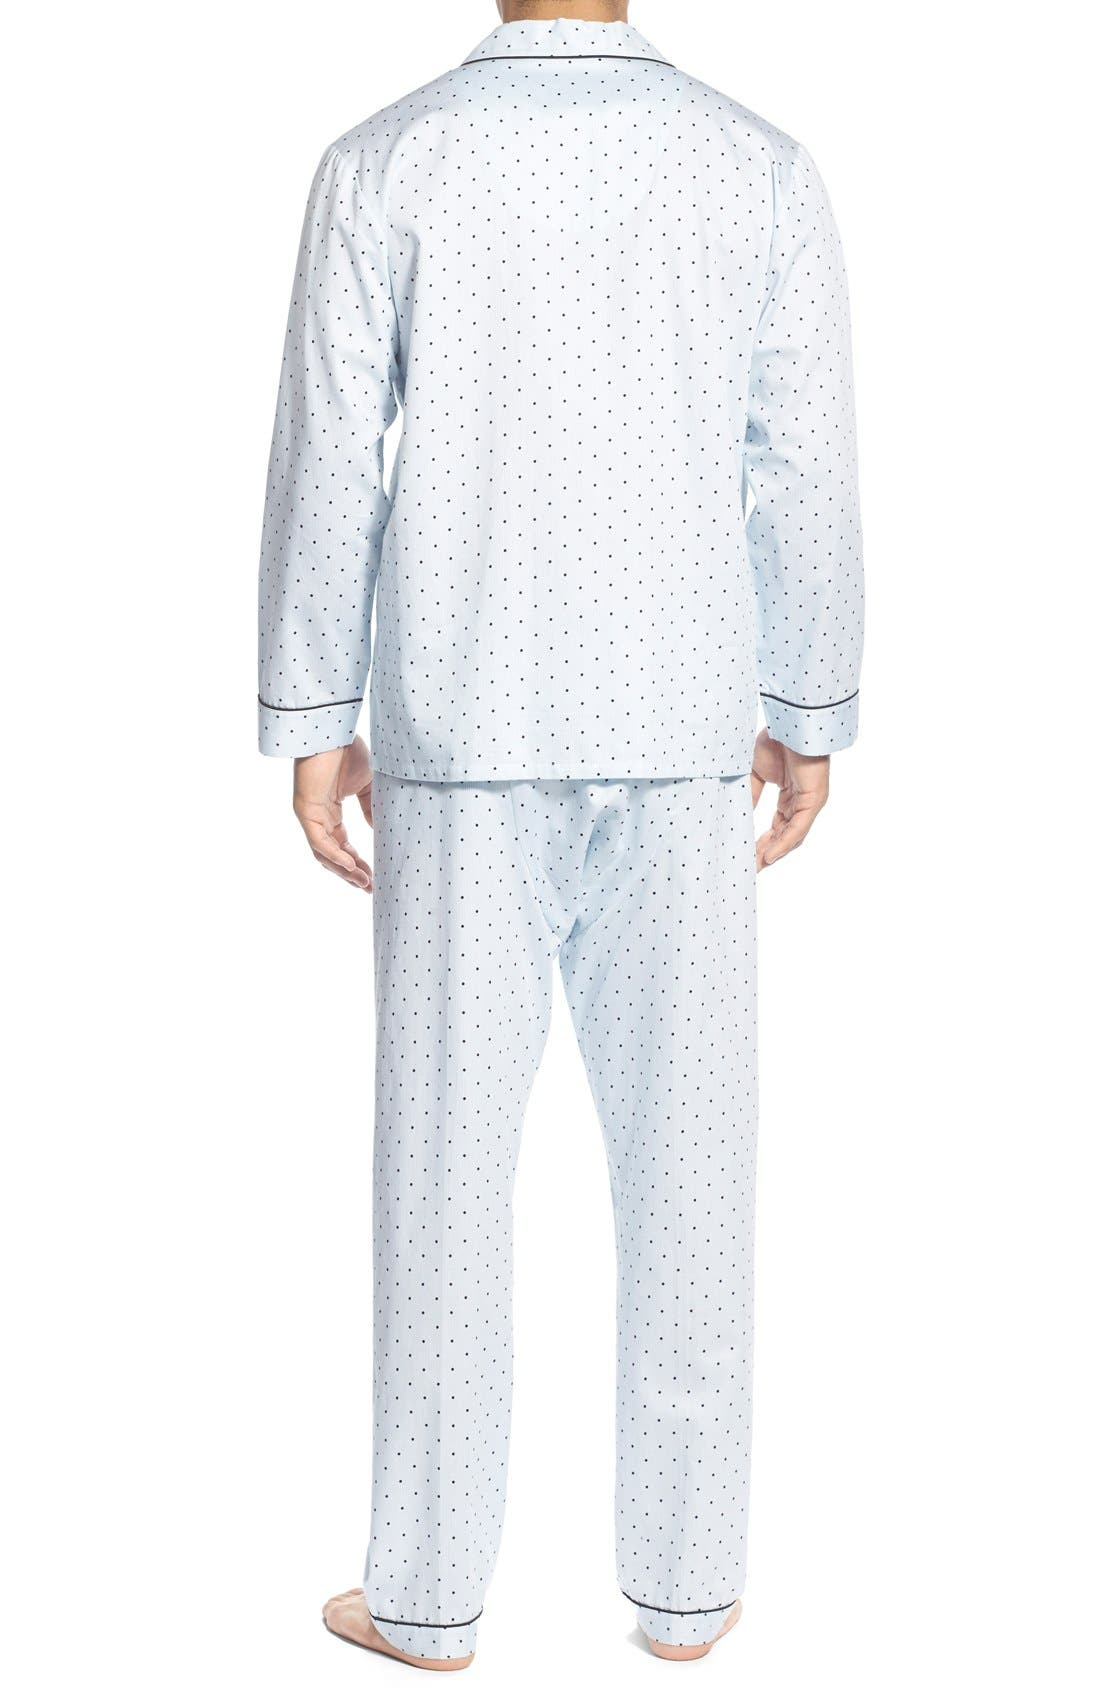 'Twilight' Cotton Pajamas,                             Alternate thumbnail 2, color,                             Navy Dots